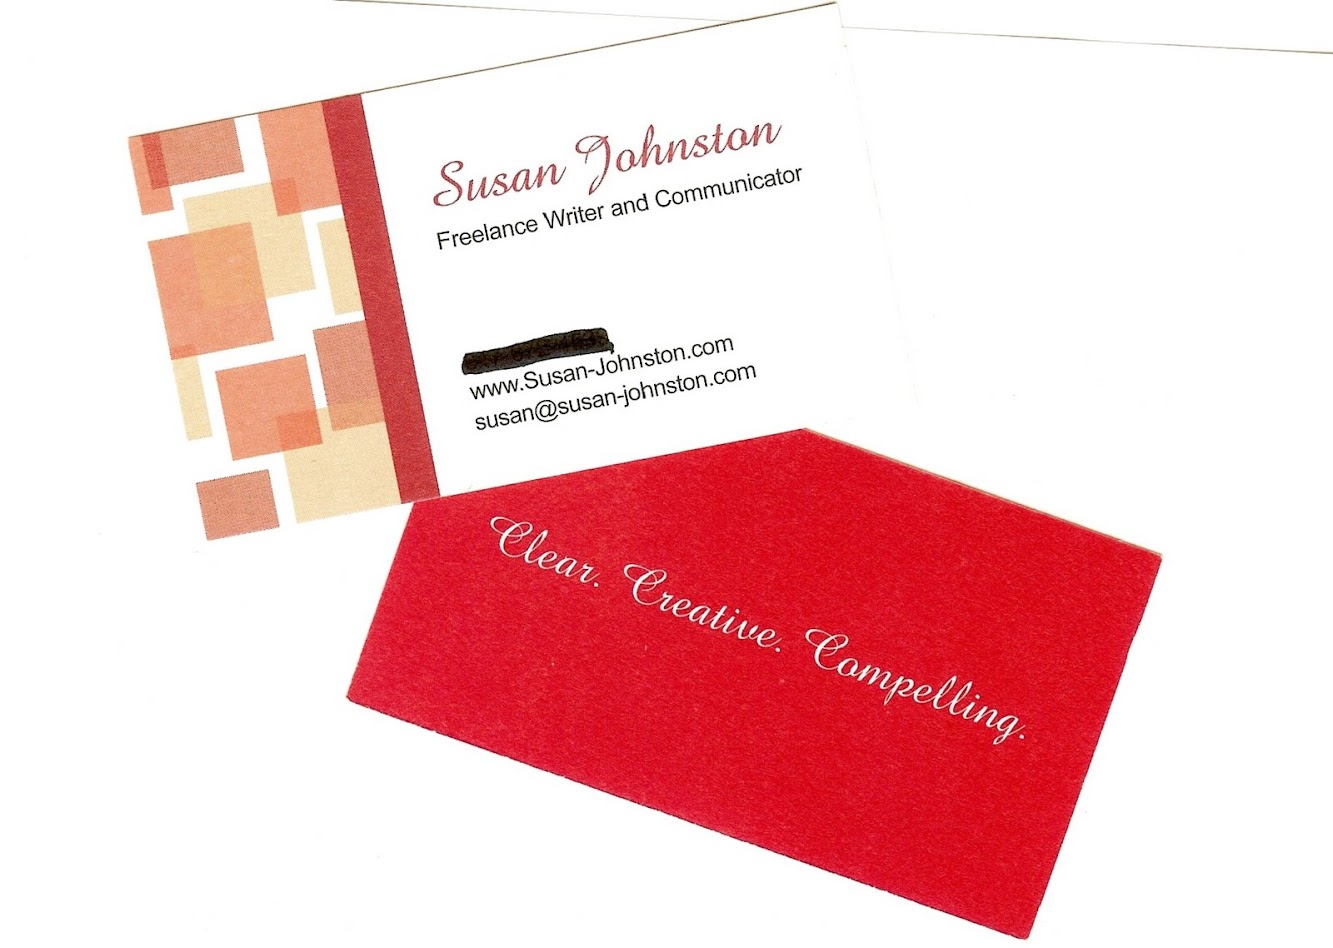 Have Business Cards Become Passe?